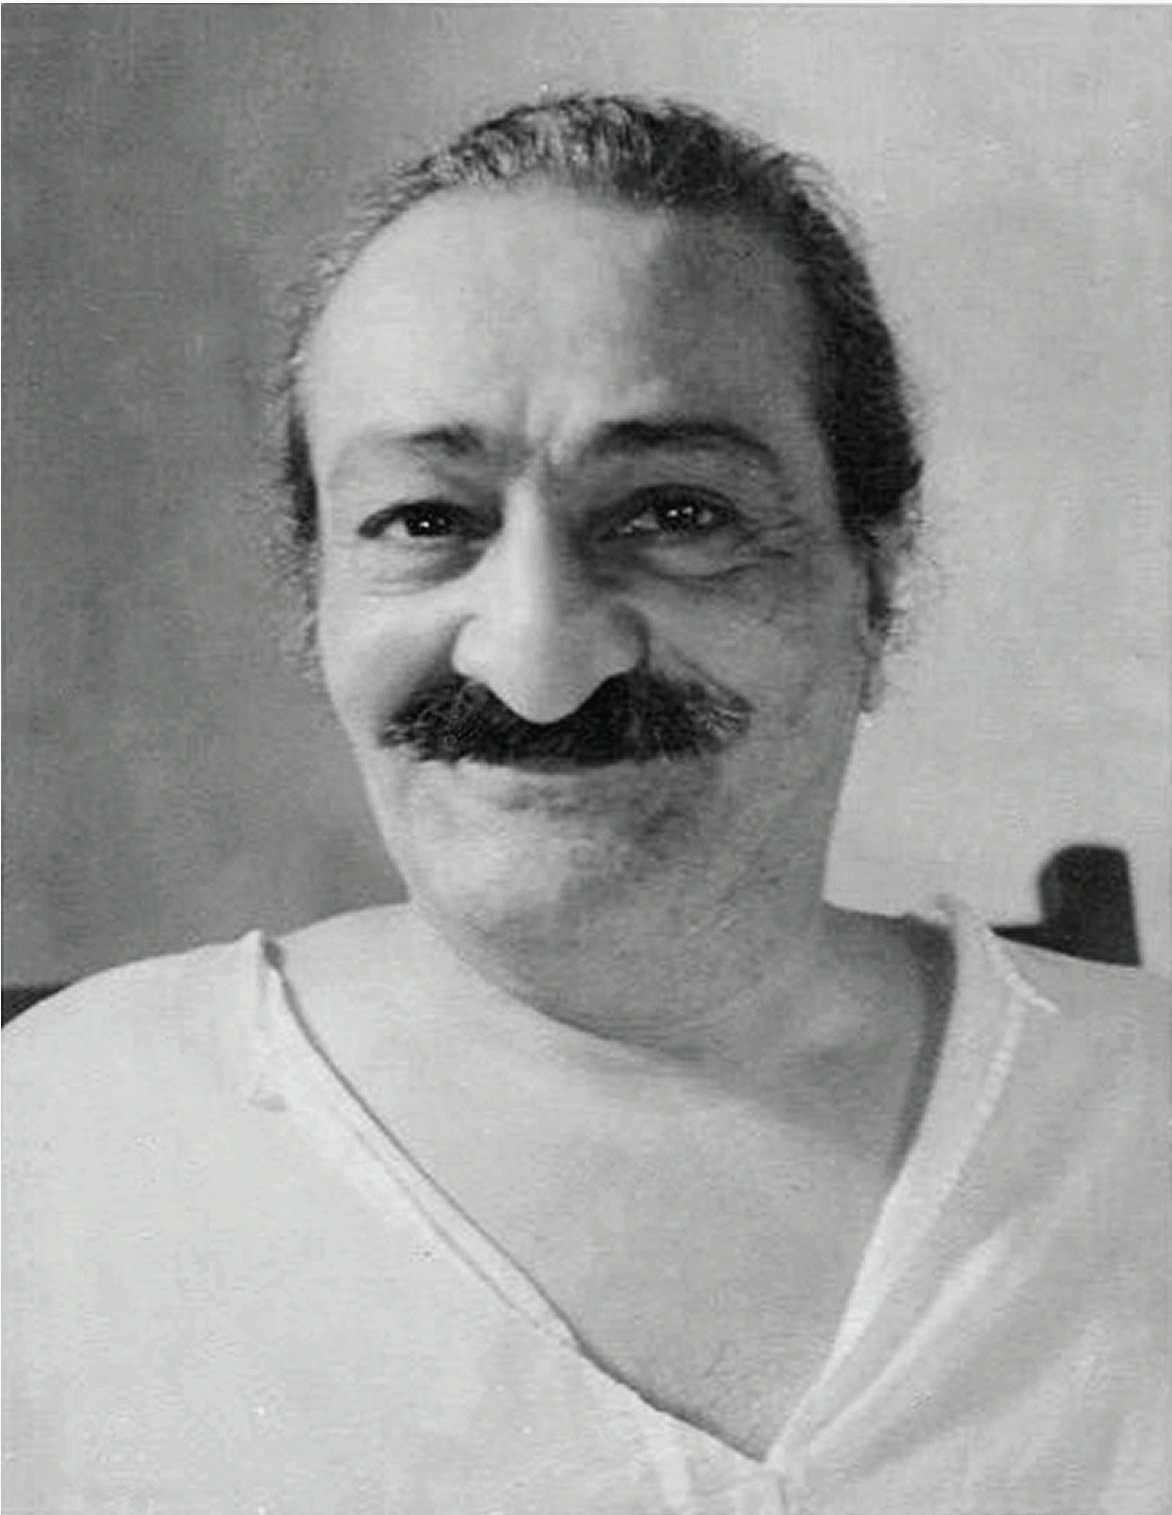 Meher Baba, 1957, source wiki commons